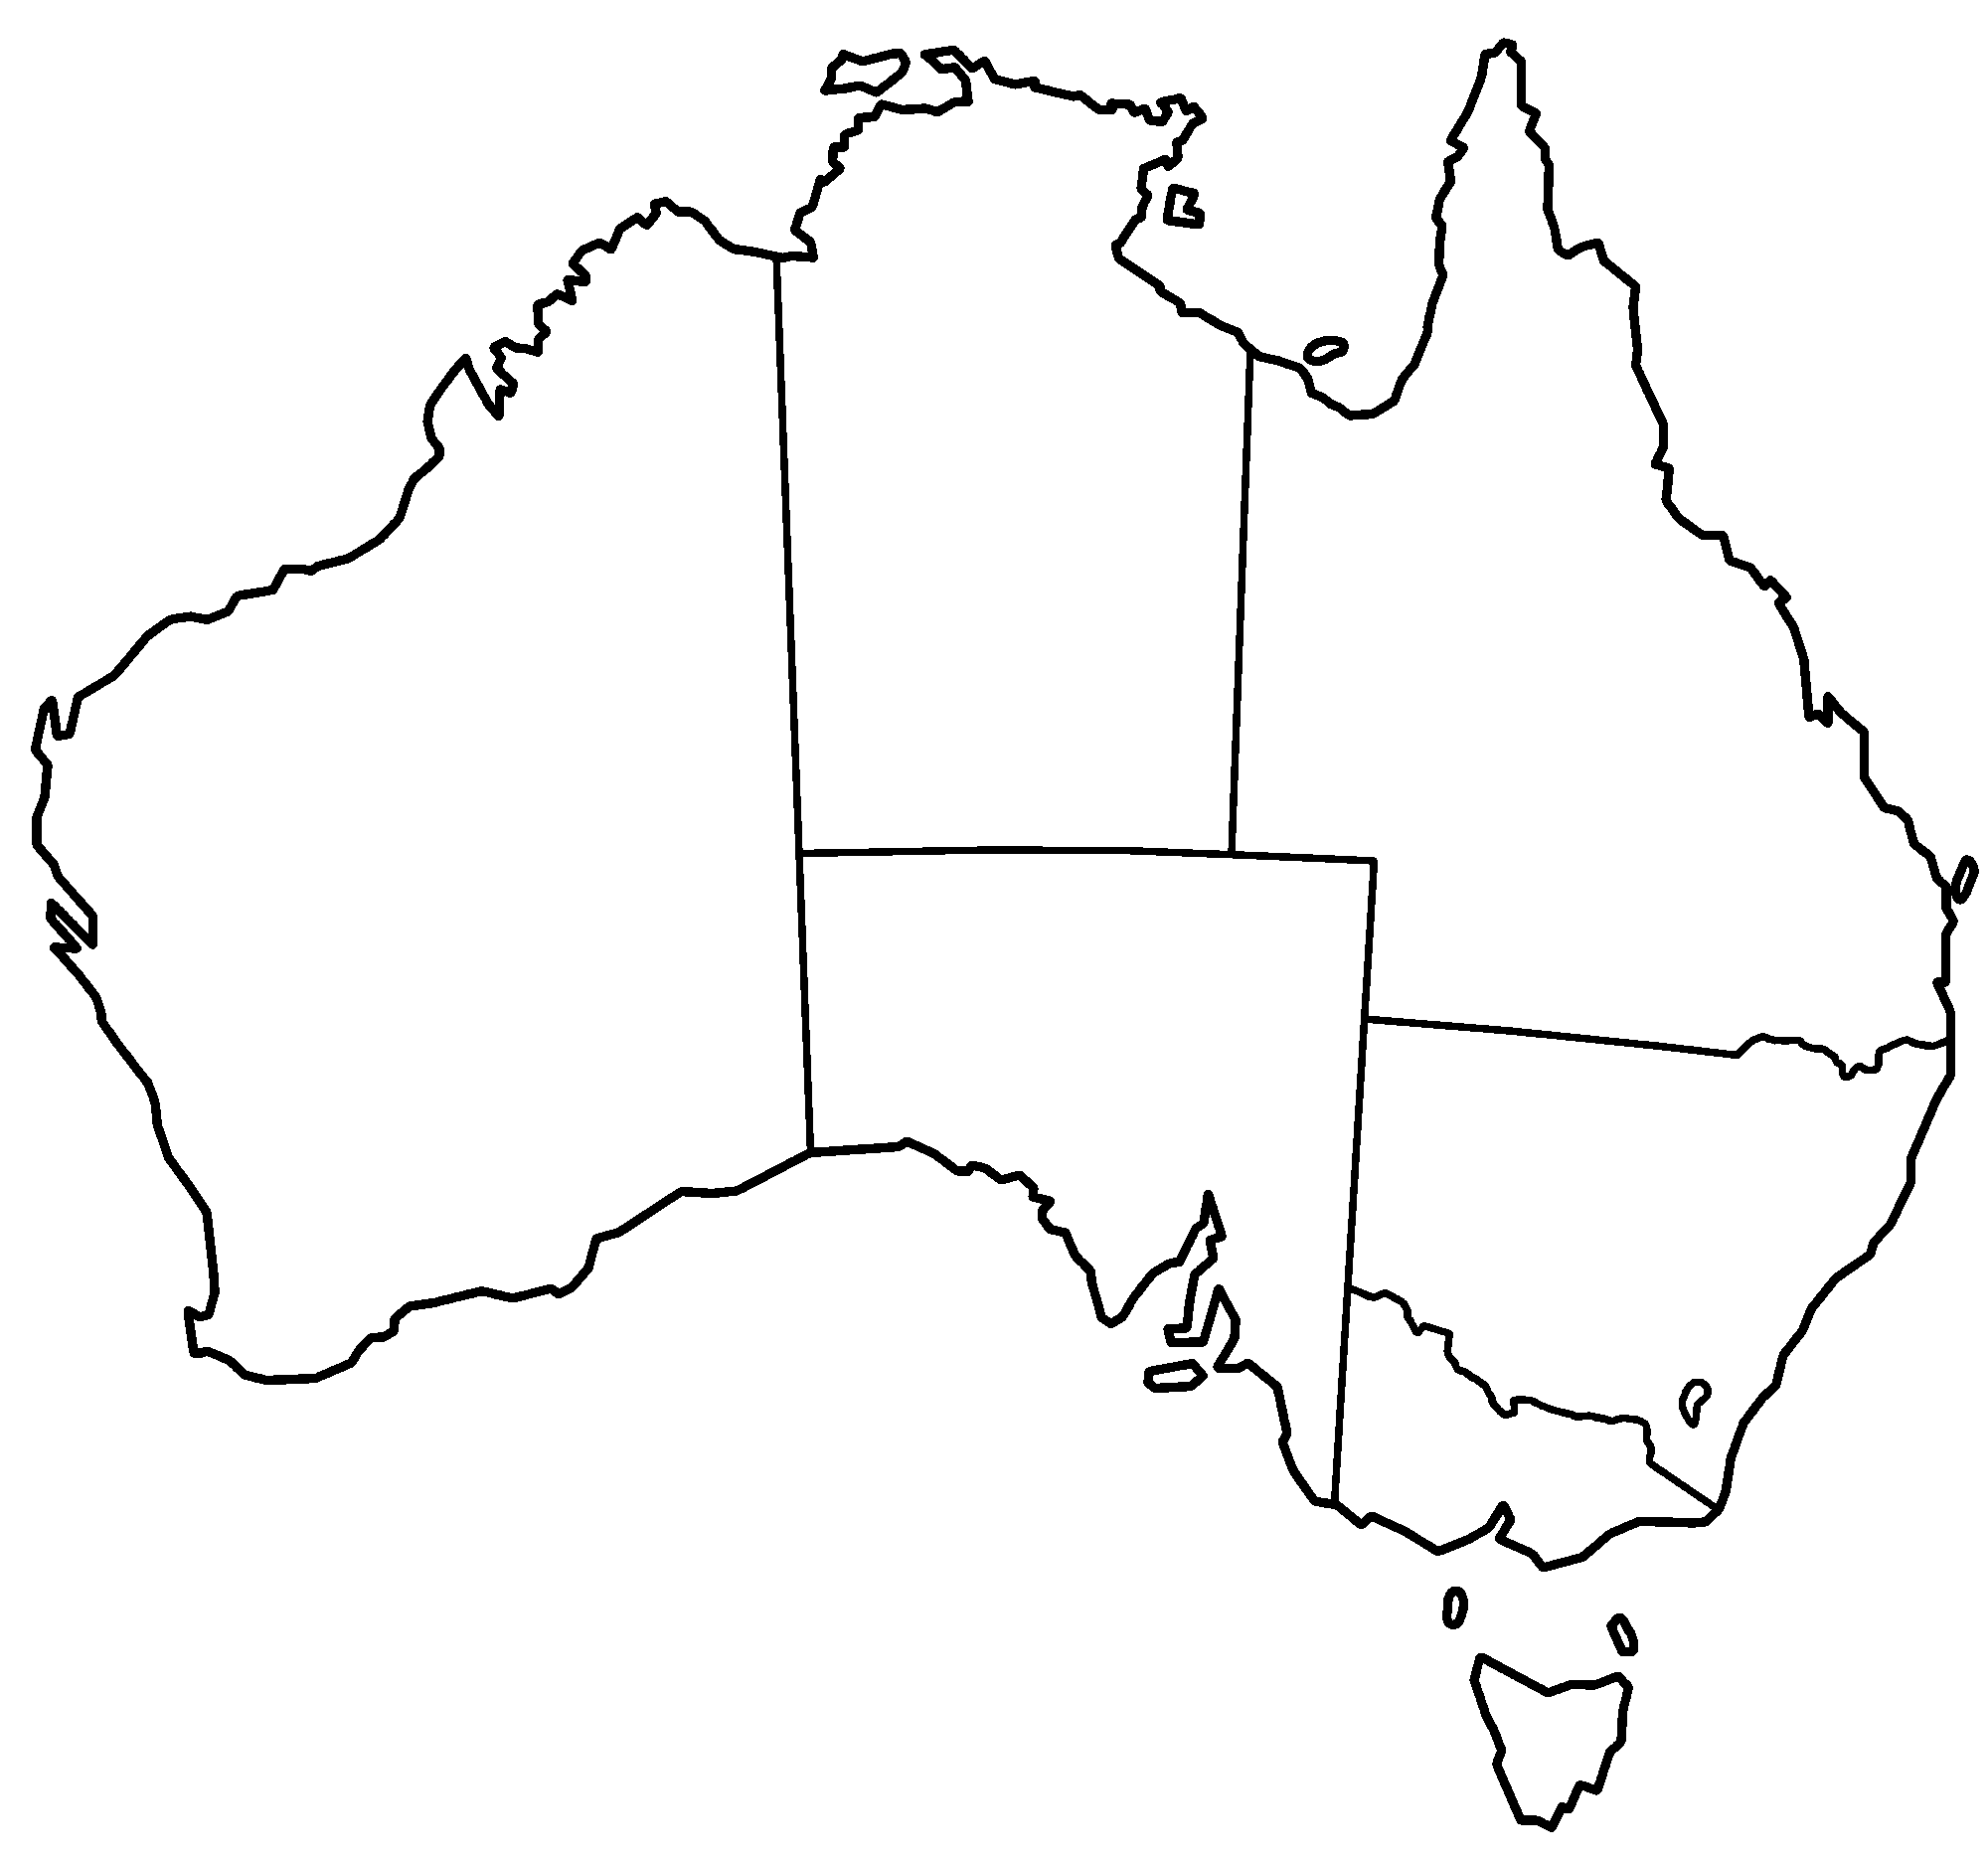 Map Of Australia Drawing at GetDrawings.com | Free for personal use ...